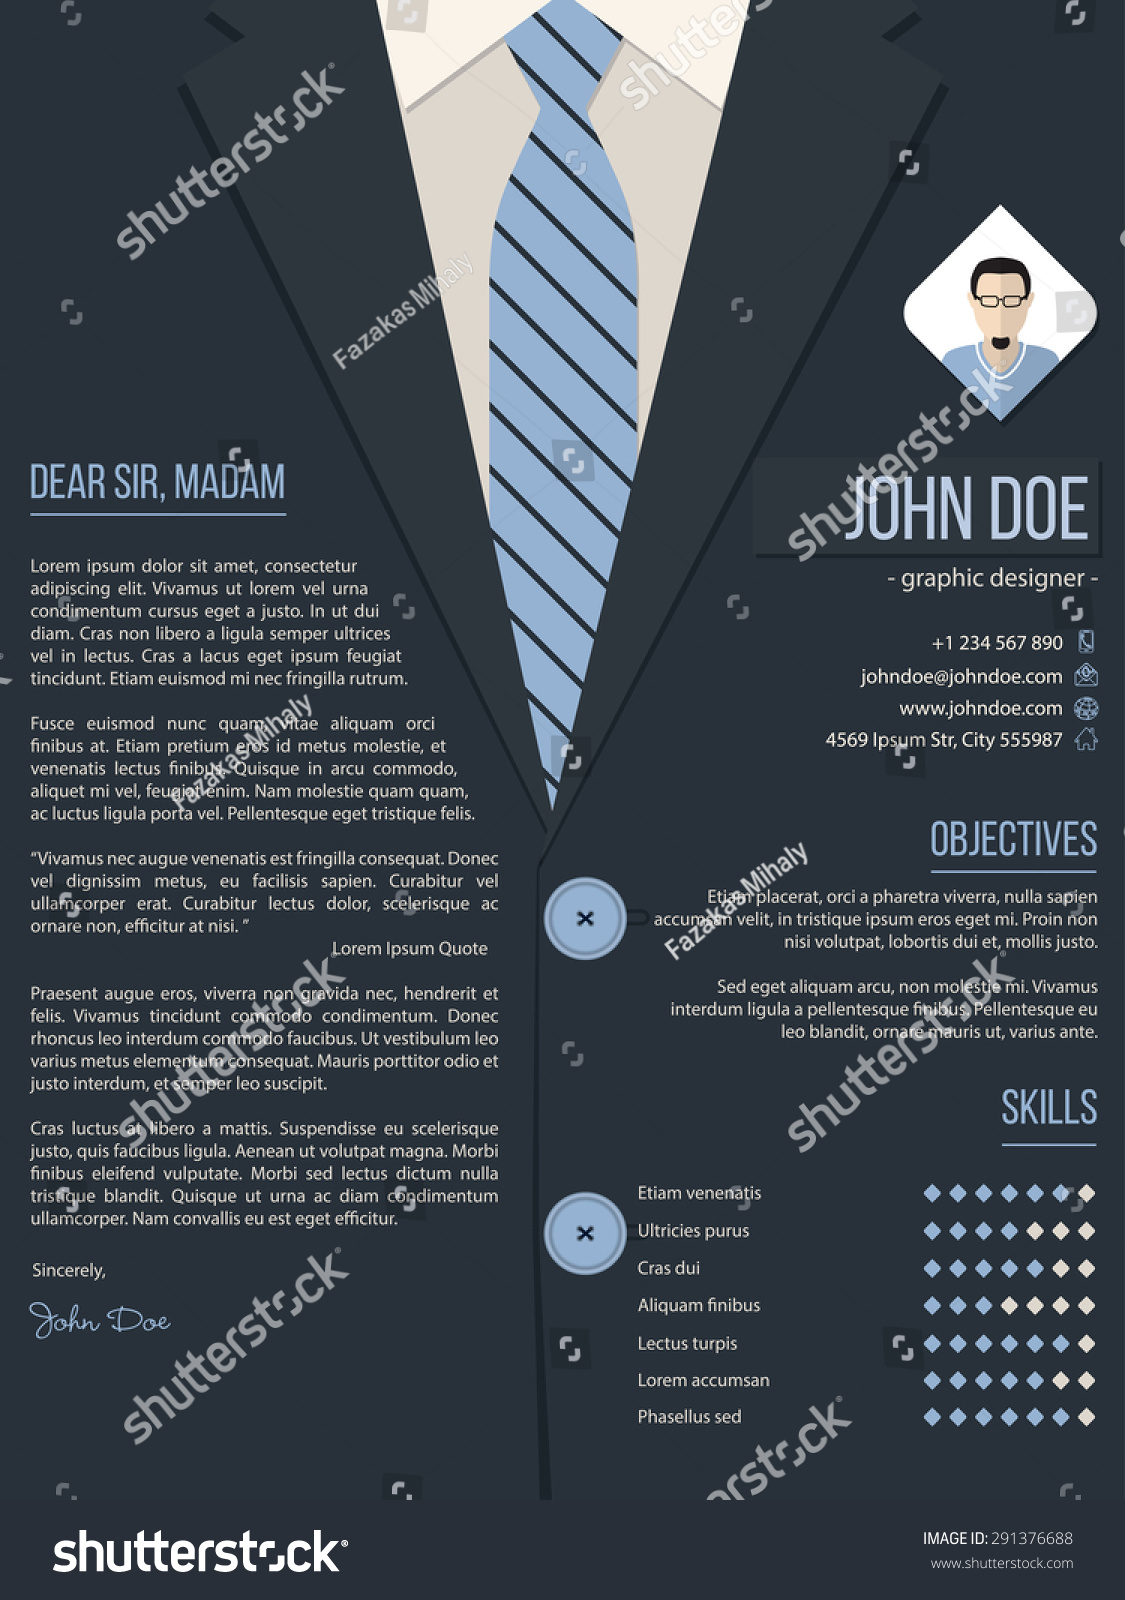 cool cover letter resume cv template design with business suit background - Cover Letter And Resume Template